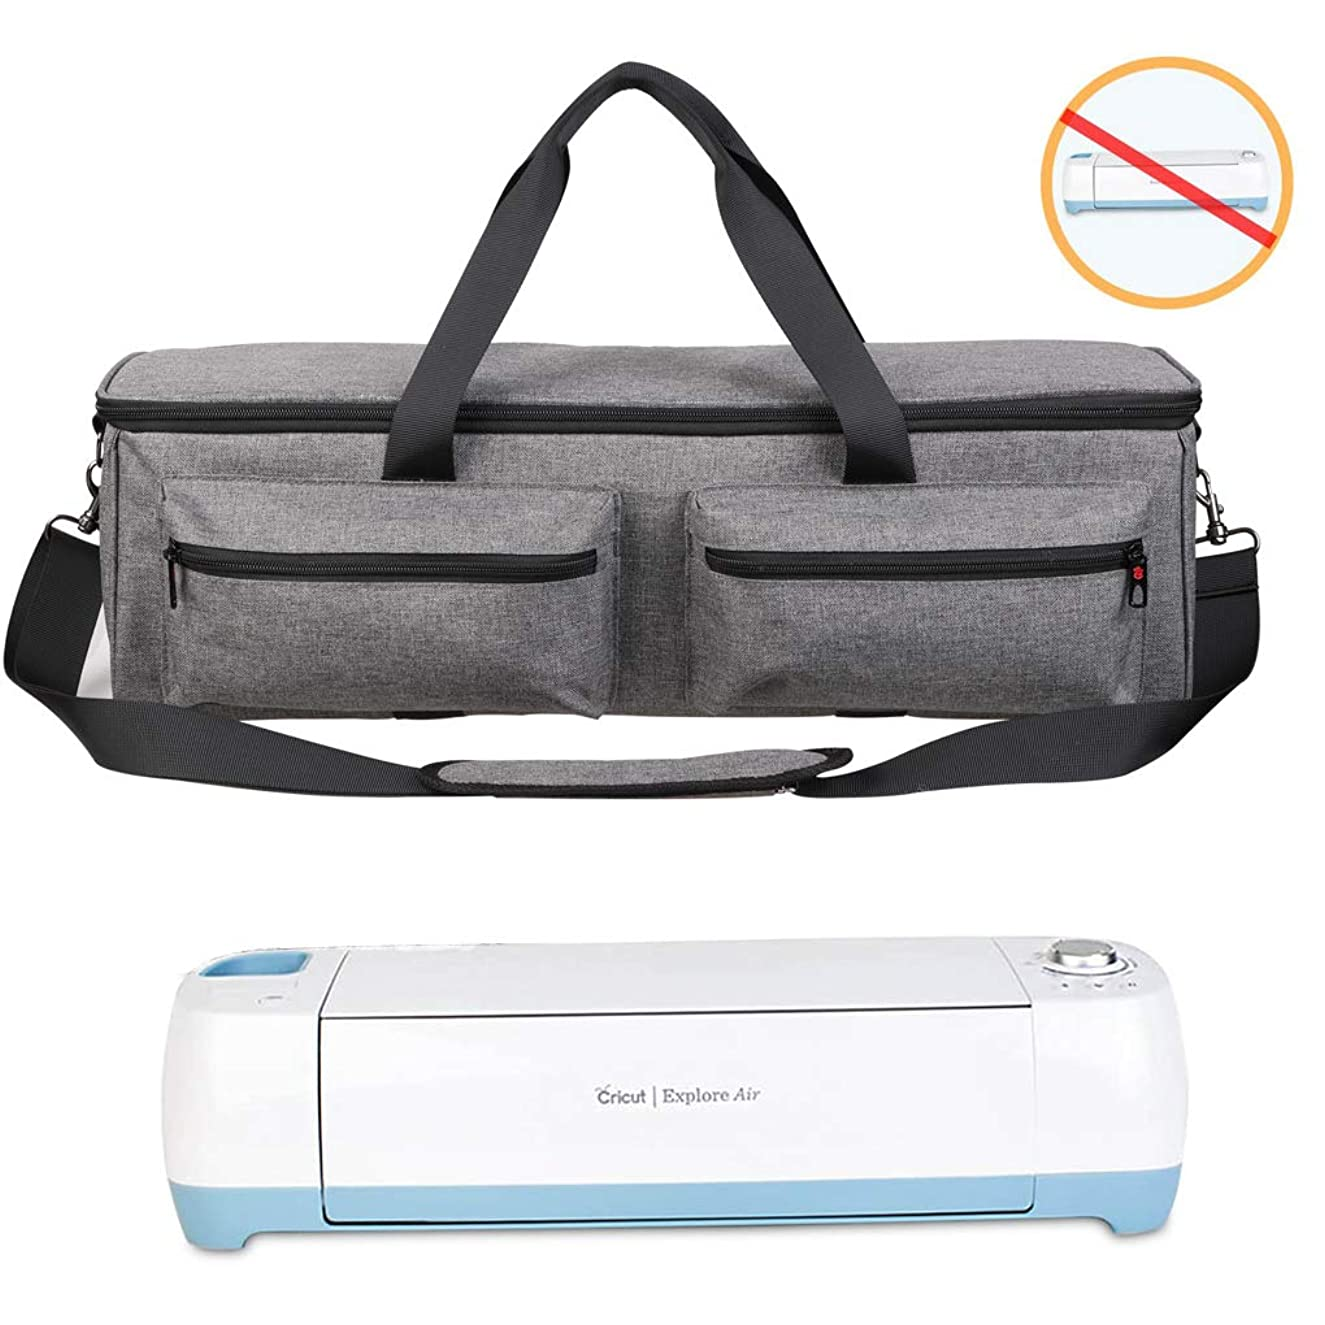 Carrying Bag Compatible with Cricut Explore Air and Maker, Tote Bag Compatible with Cricut Explore Air and Supplies (Bag Only, Patent Pending) (Gray)